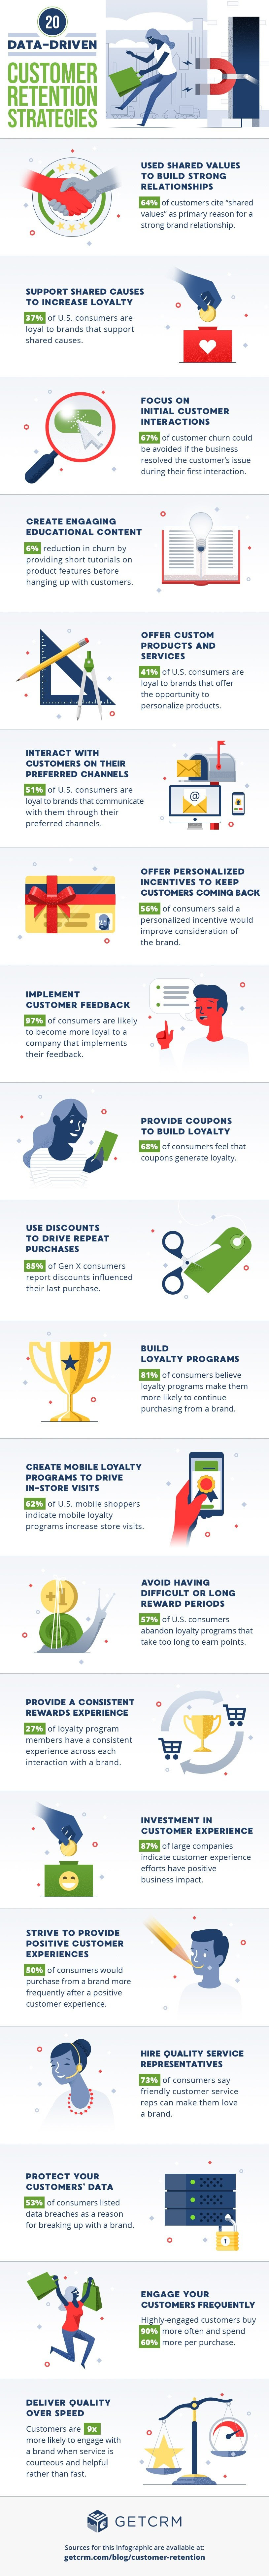 Customer retention infographic from GetCRM